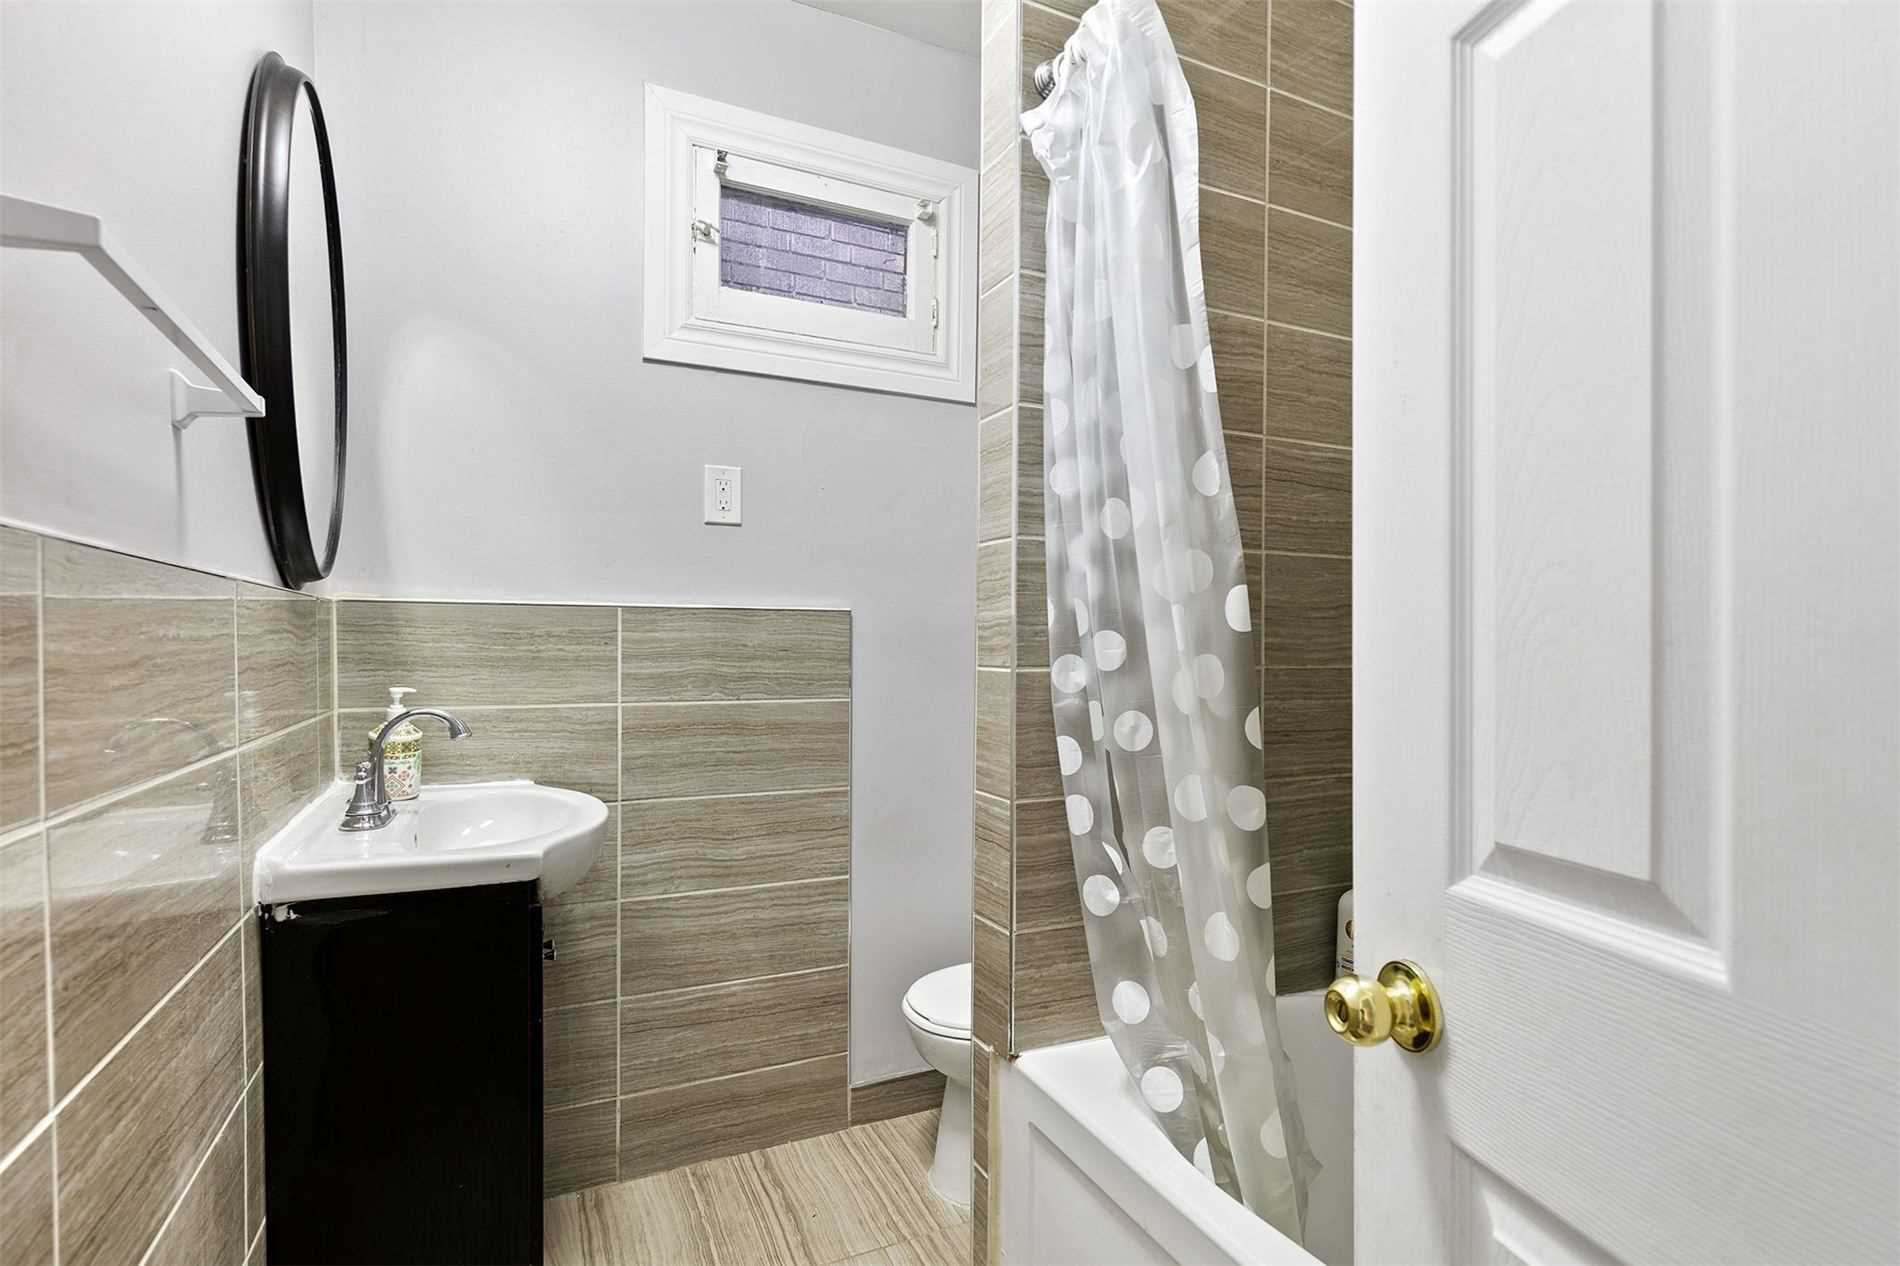 Detached house For Sale In Windsor - 1093 Henry Ford Centre Dr, Windsor, Ontario, Canada N8Y 2T3 , 5 Bedrooms Bedrooms, ,2 BathroomsBathrooms,Detached,For Sale,On,Henry Ford Centre